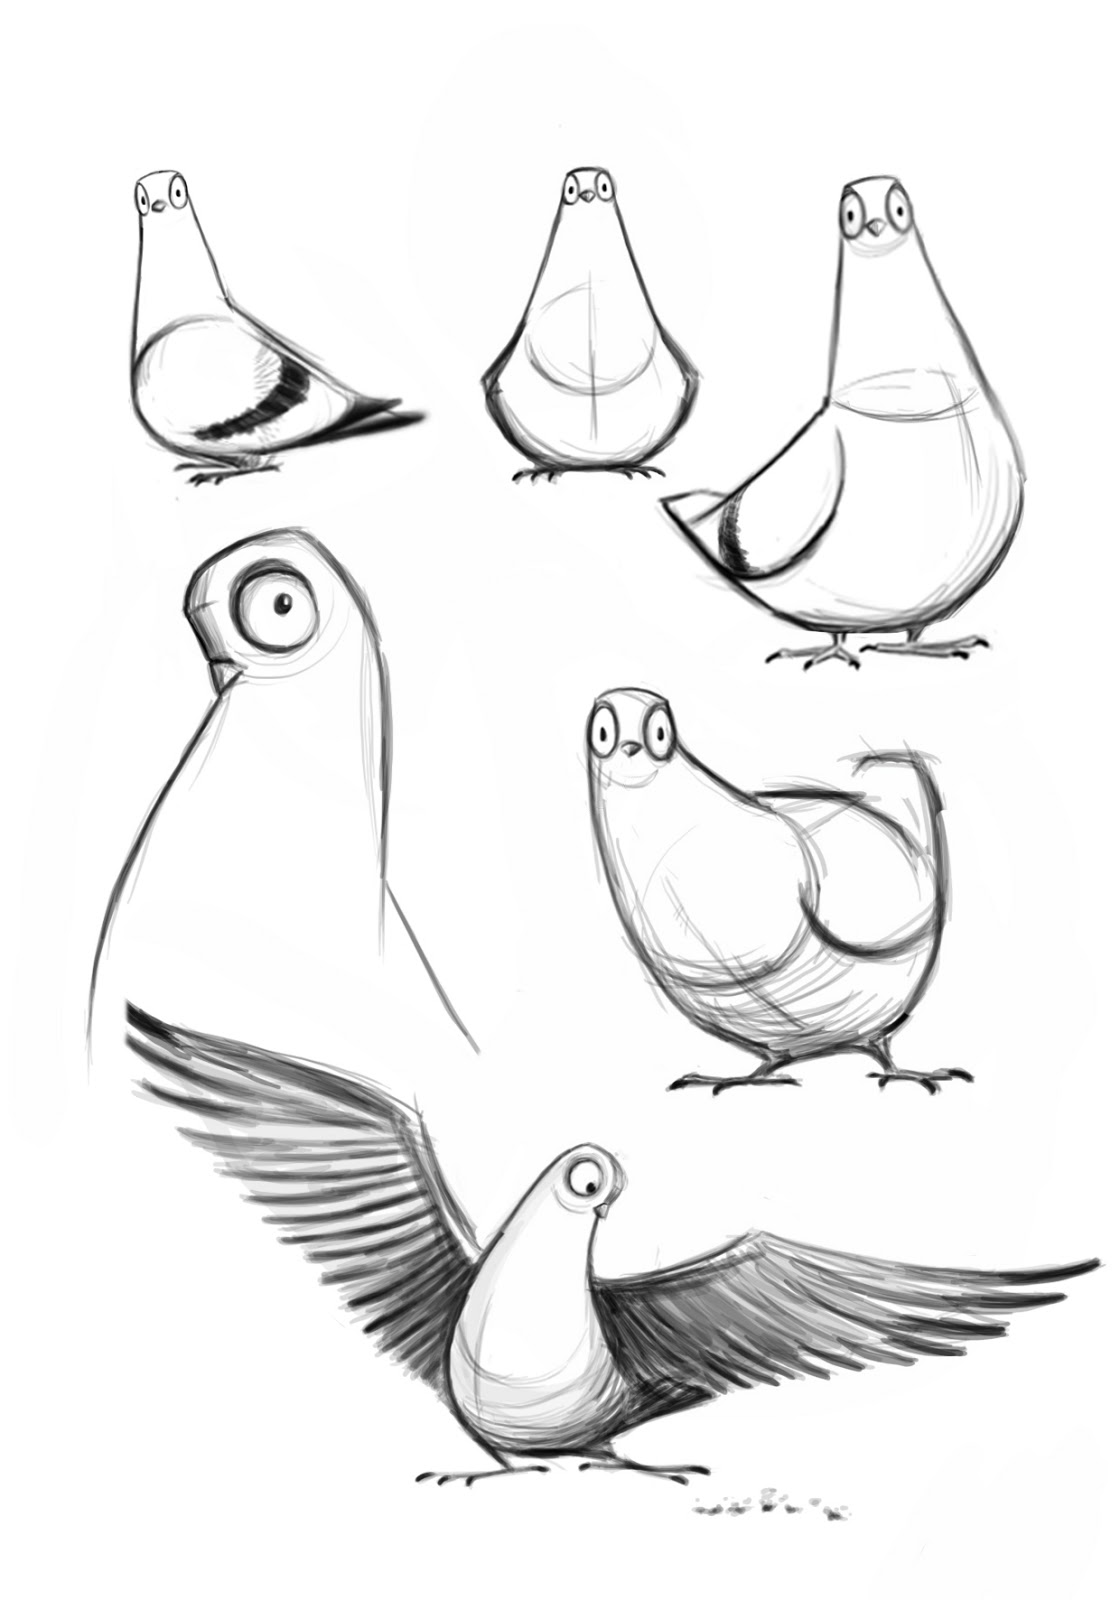 Dove Bird Drawing Easy Wesele Golabek Ikona Szkicu Grafika